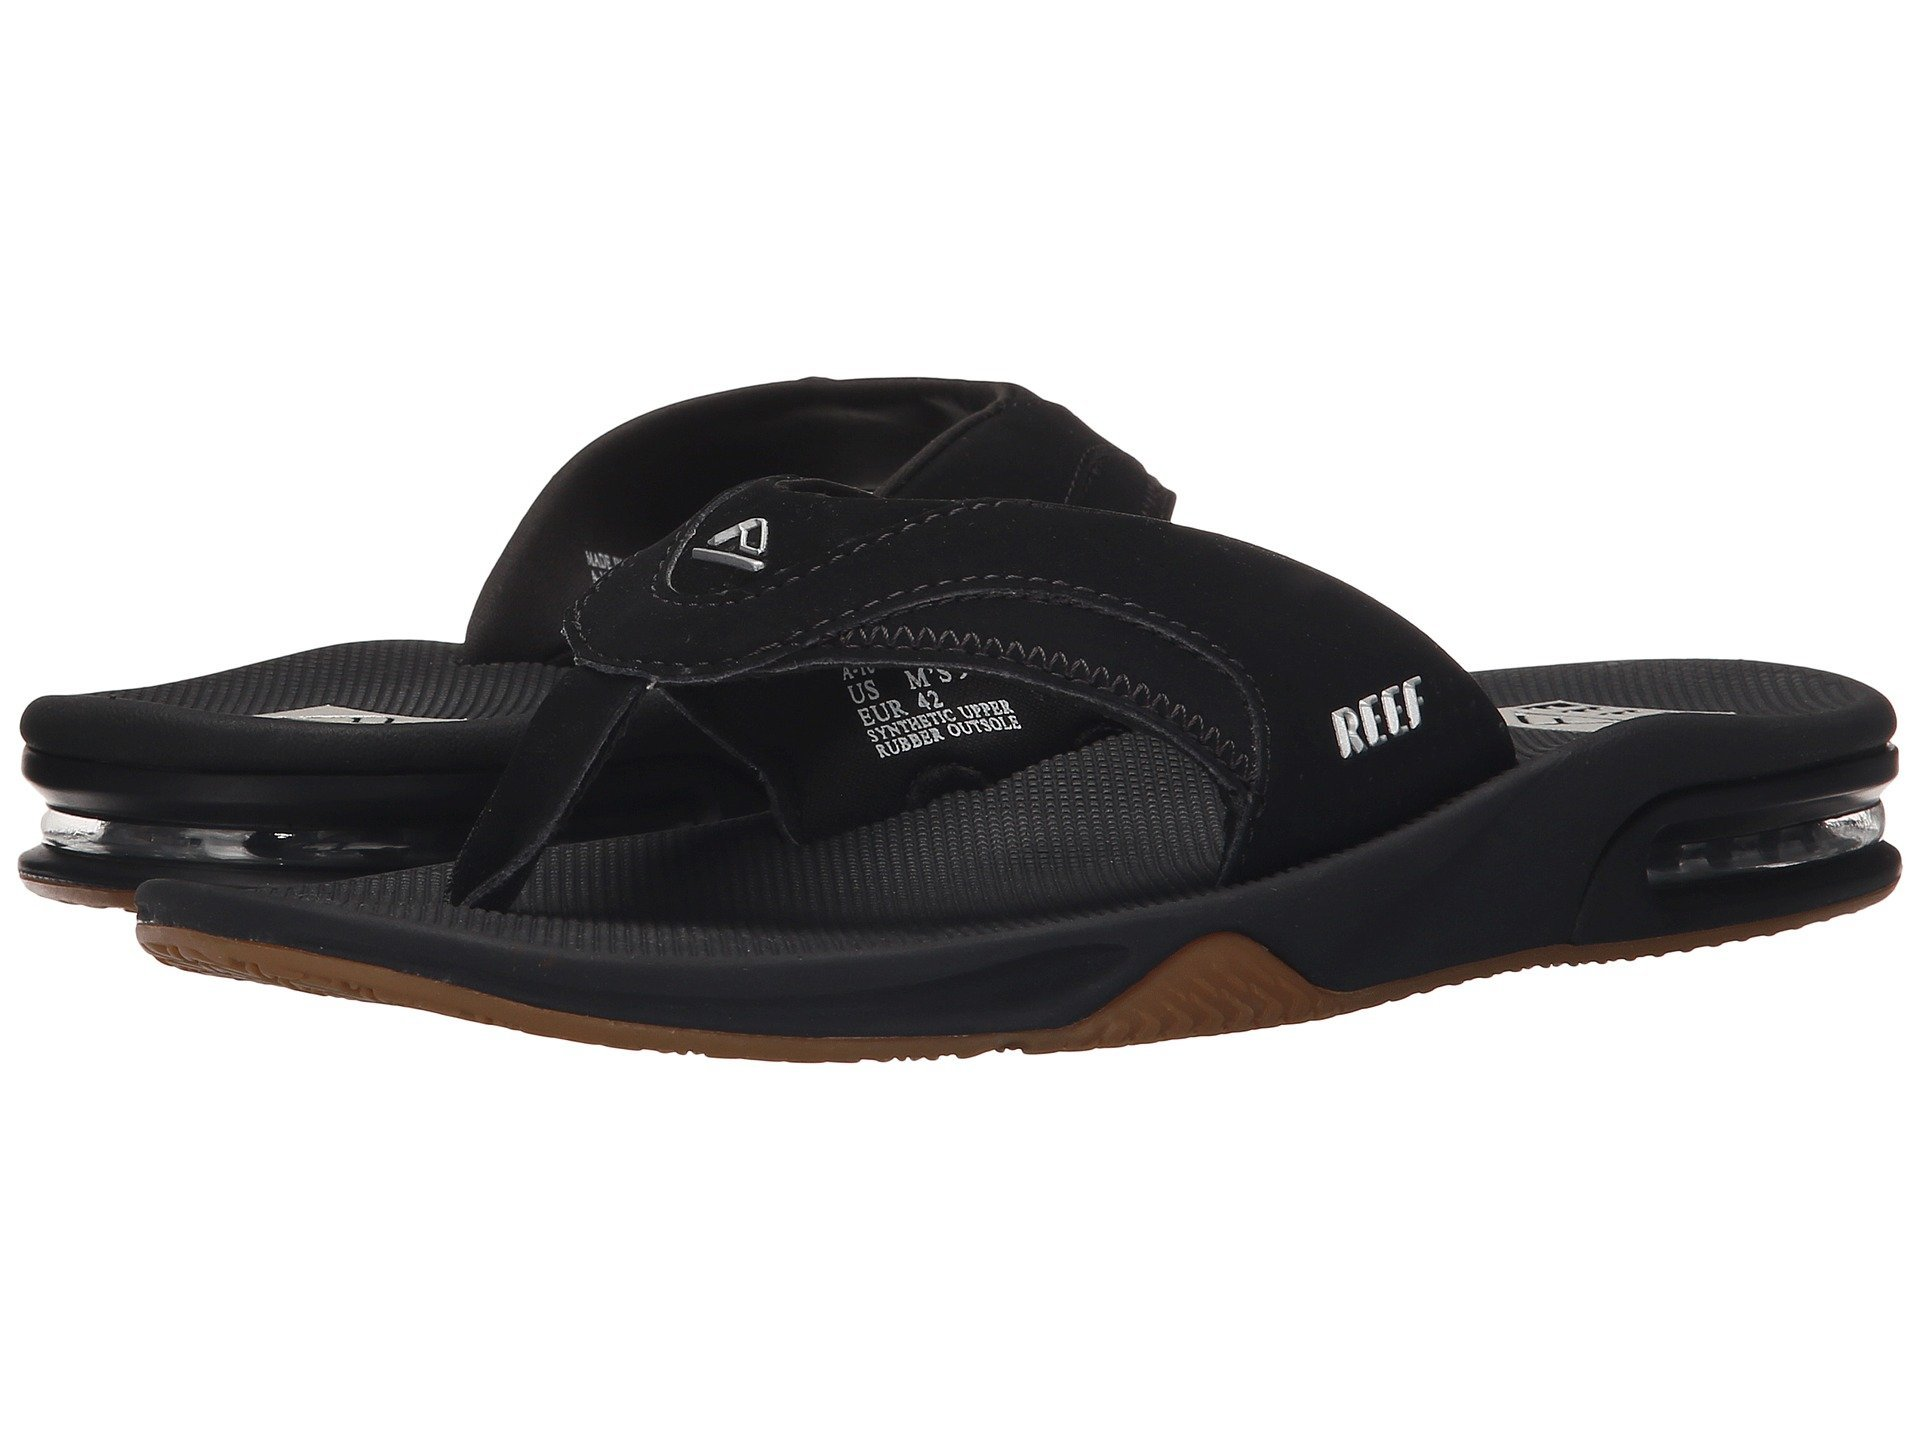 Reef Men's Fanning II Flip Flop, Black/Silver, 9 M US by Reef